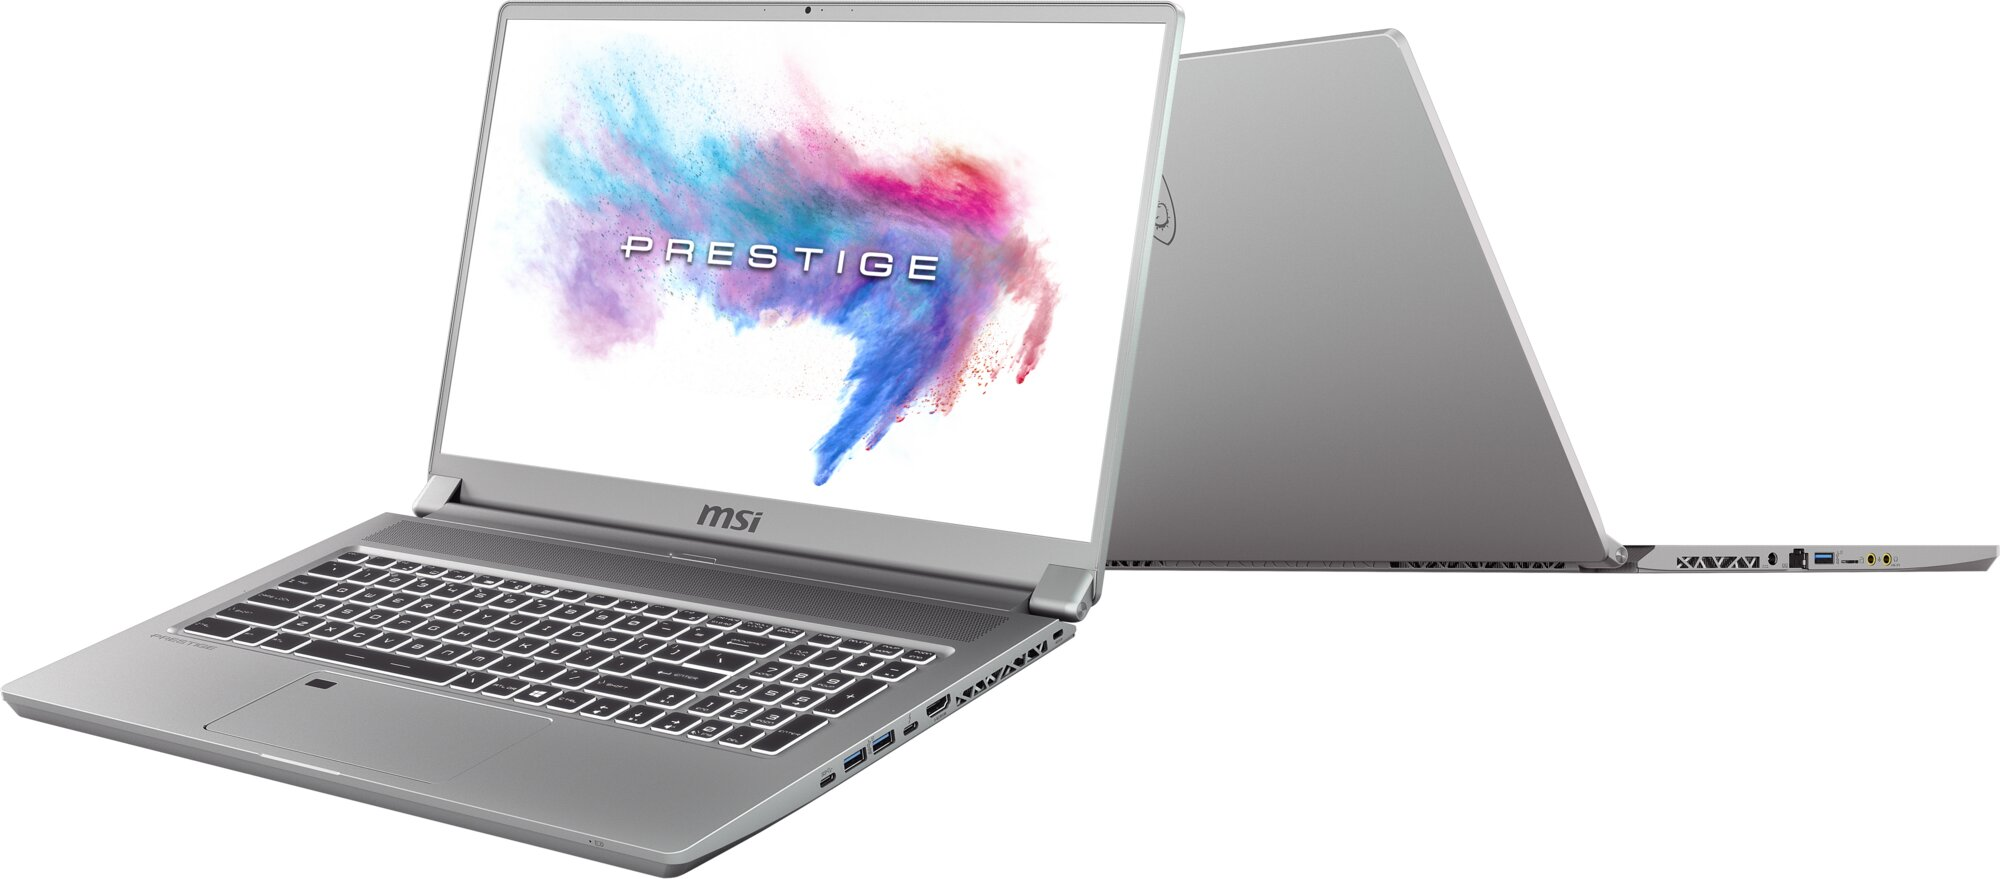 MSI P75 Creator 9SF674IT